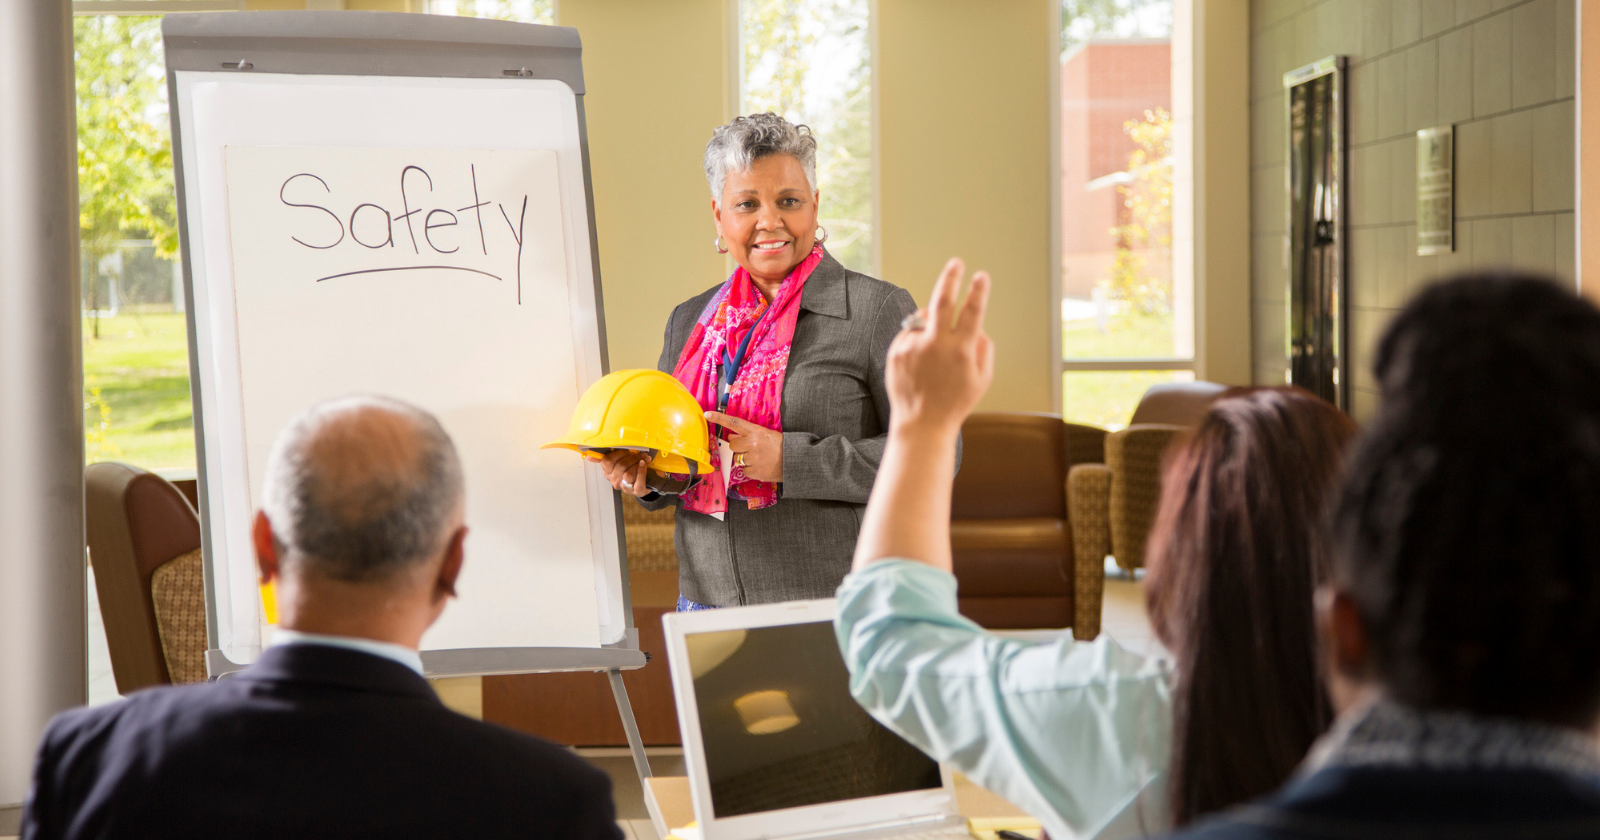 Woman teaching safety lesson in a workplace